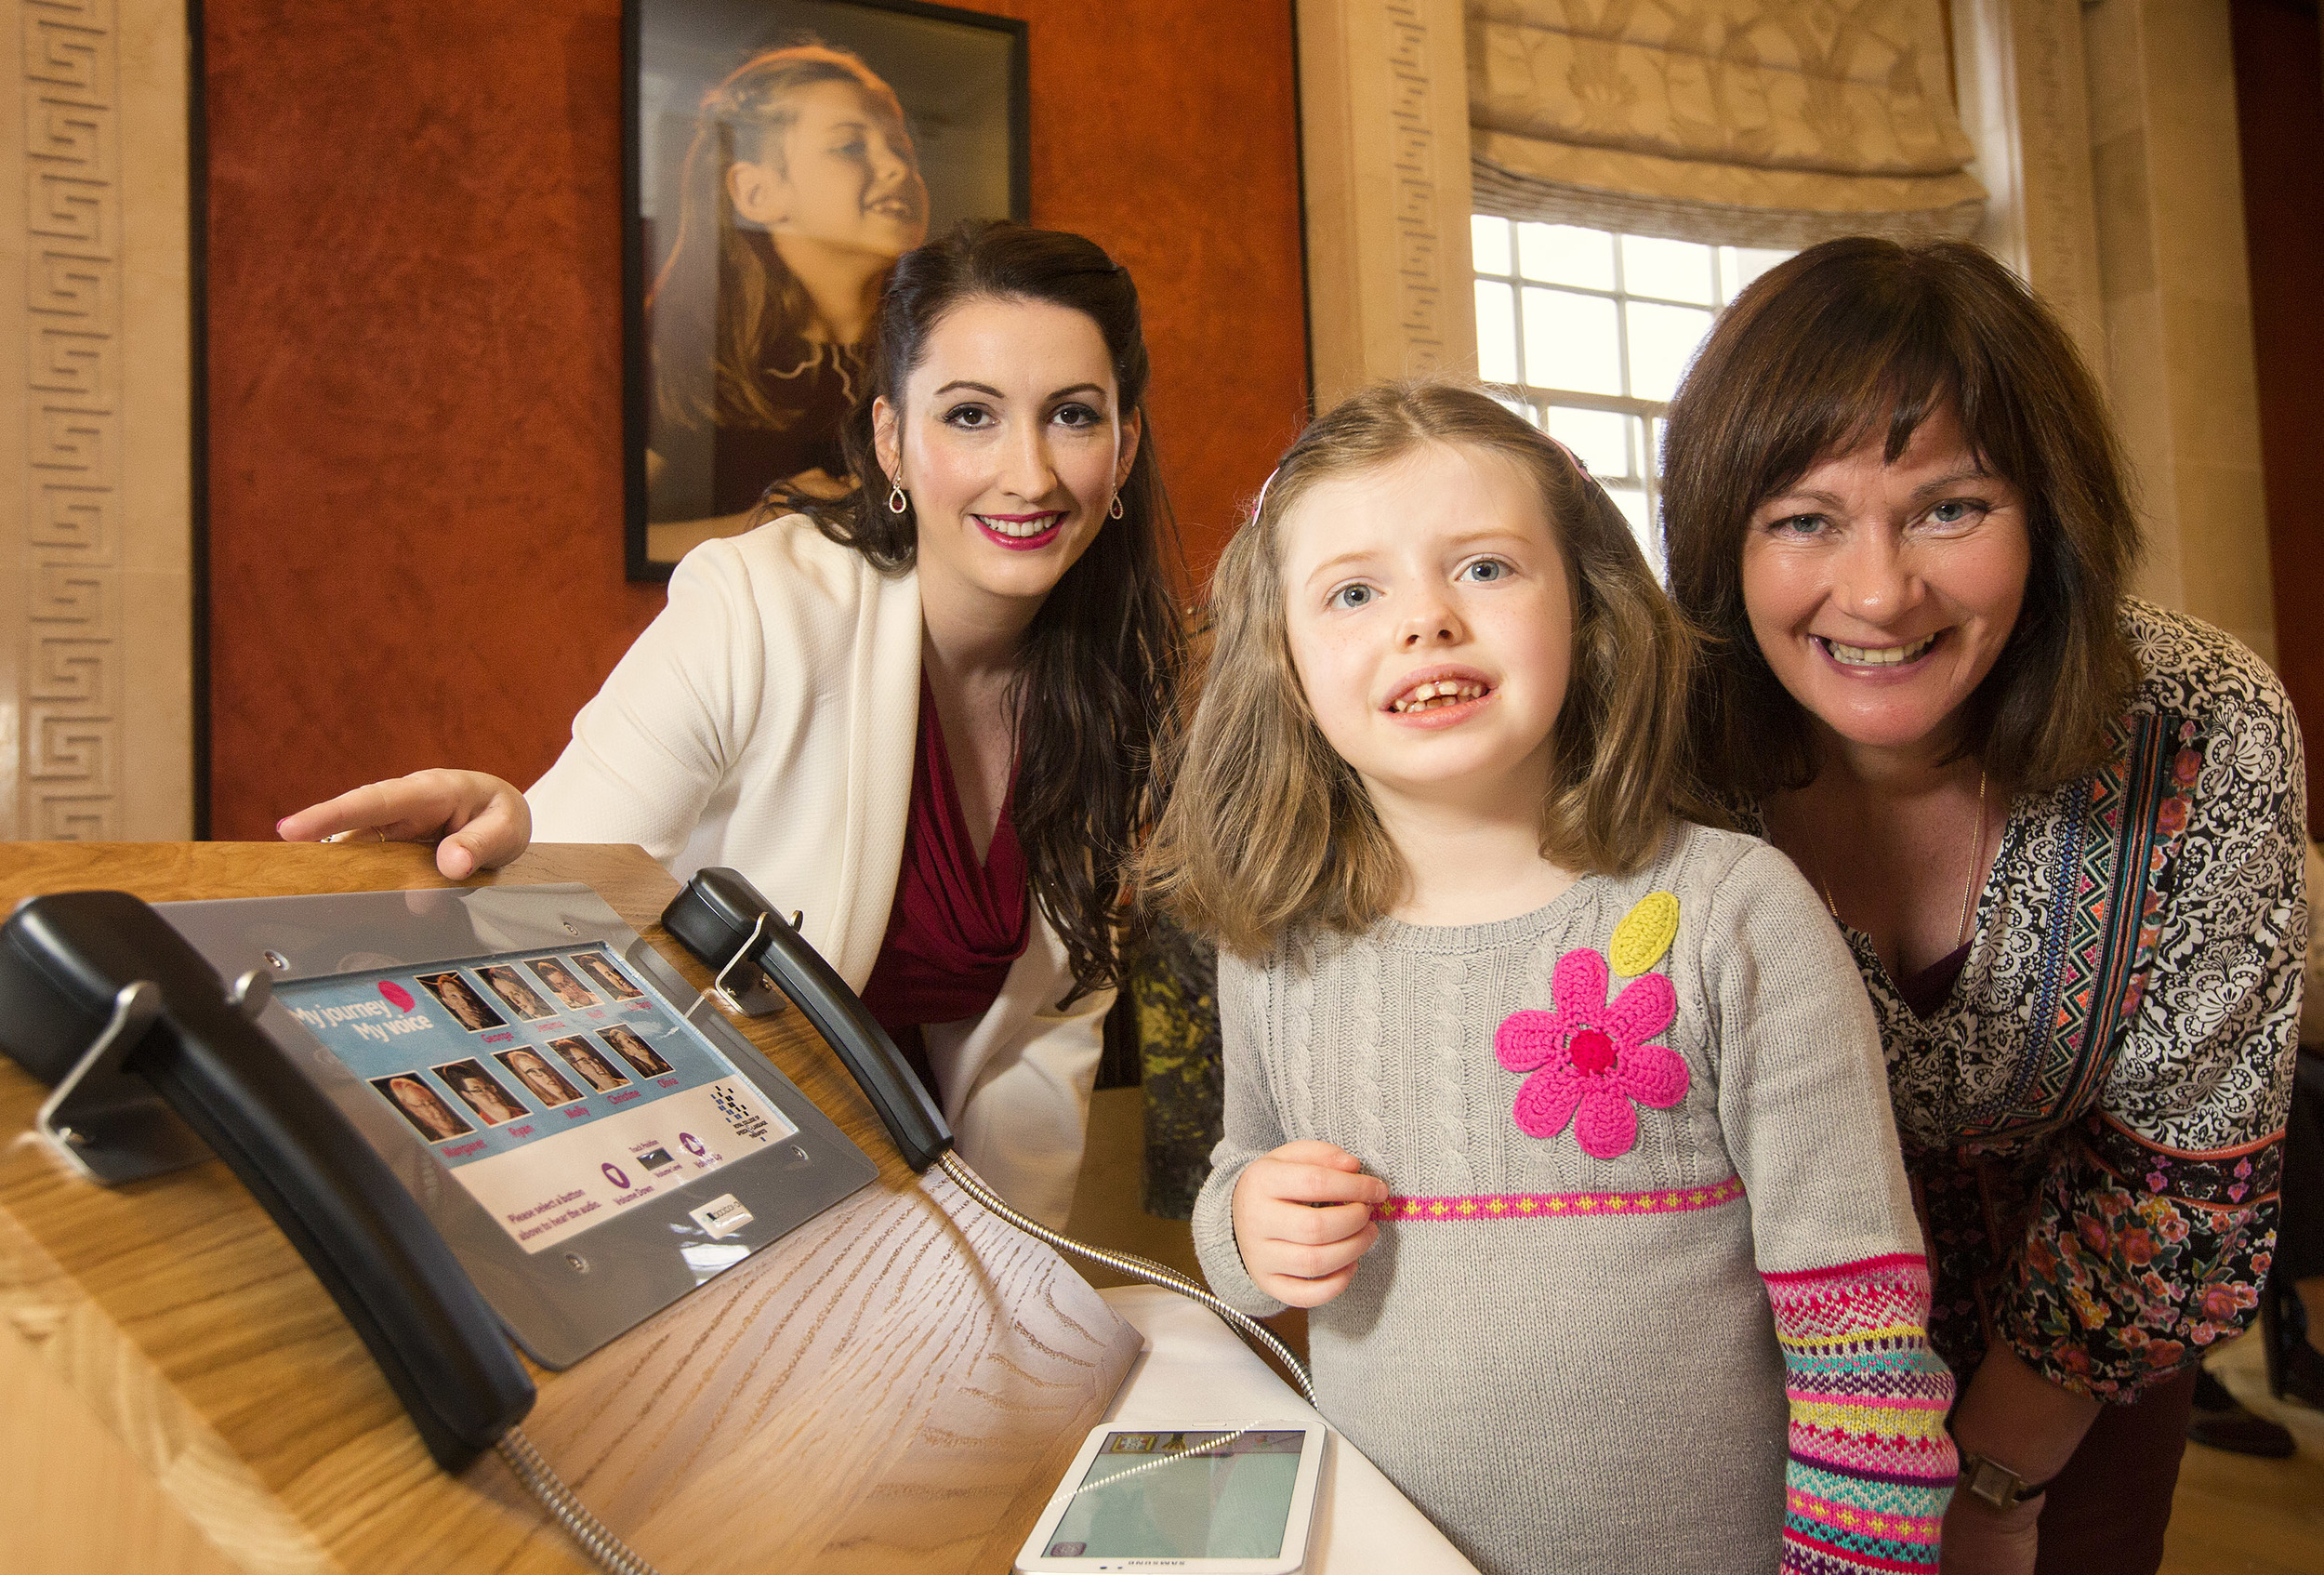 Junior Ministers Emma Pengelly (left)and Jennifer McCann (right)pictured with Olivia Curran (centre)launching the Royal College of Speech and Language Therapists 'My Journey, My Voice' multimedia portraits and stories exhibition to raise awareness of communication disability at Parliament Buildings, Stormont.